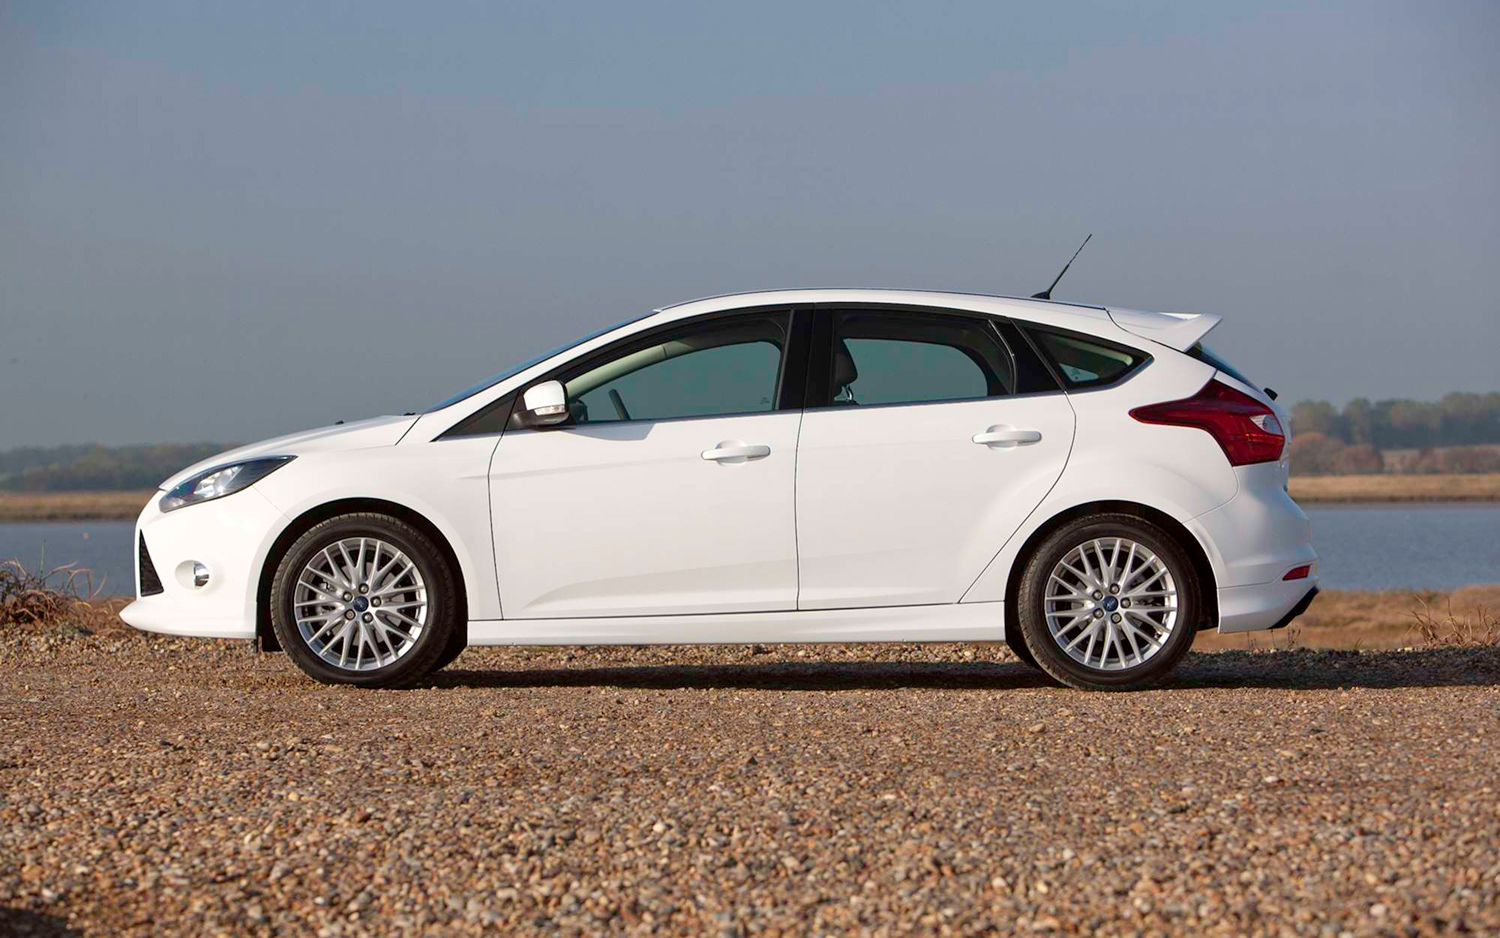 Ford Focus Vignale Concept moreover Ford Focus Sedan Glx 2 0 2008 2013 as well 18518 together with Ford Focus Sedan 2 0 Ghia 2009 as well Wallpaper 04. on 04 ford focus sedan